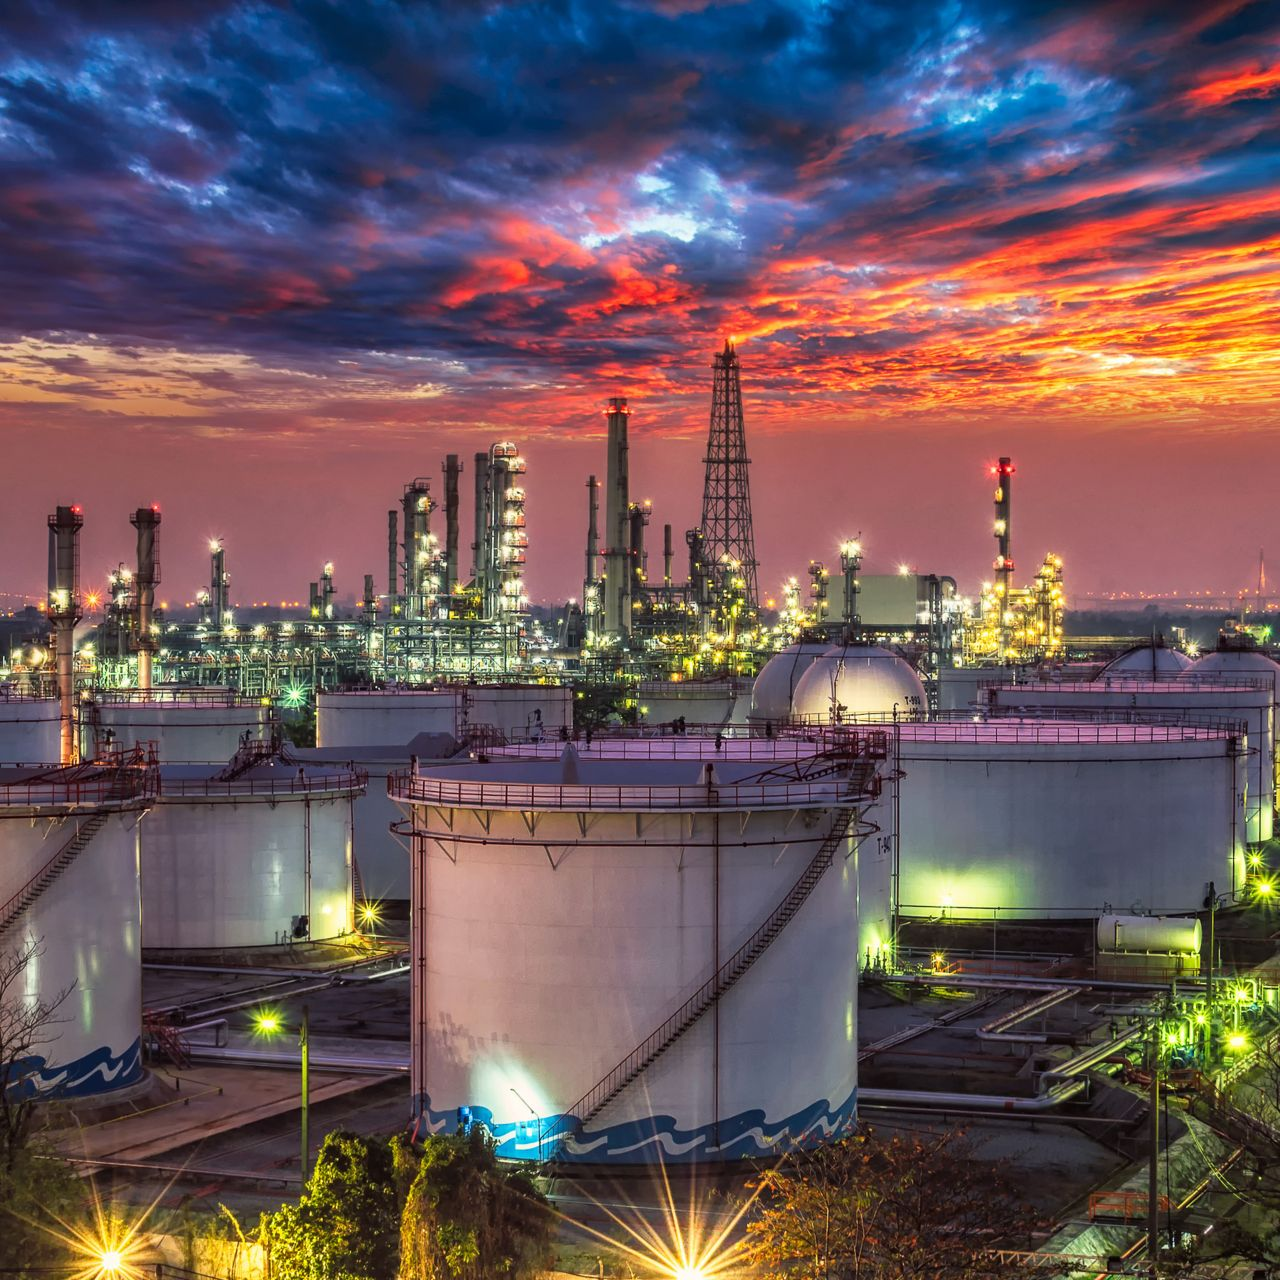 sps-his-gci-factory-petrochemical-plant-sstk-278830388